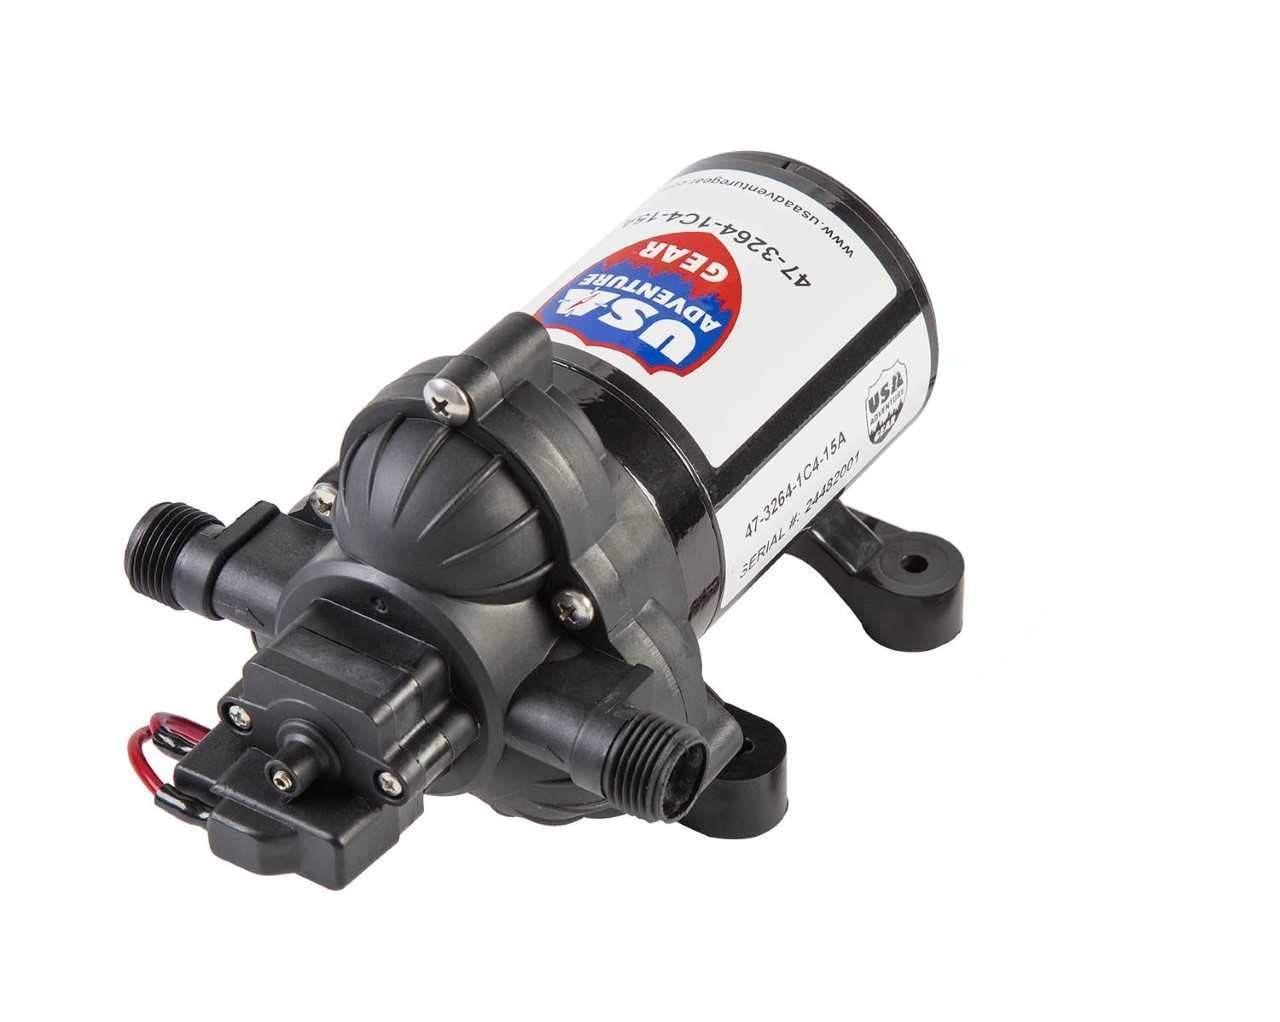 USA Adventure Gear Progear 3200 RV Replacement Water Pump   4008 Revolution Direct Replacement   3 GPM   Electric Whisper Quiet Operation   Self-Priming   Approved for Potable Water Use by USA Adventure Gear